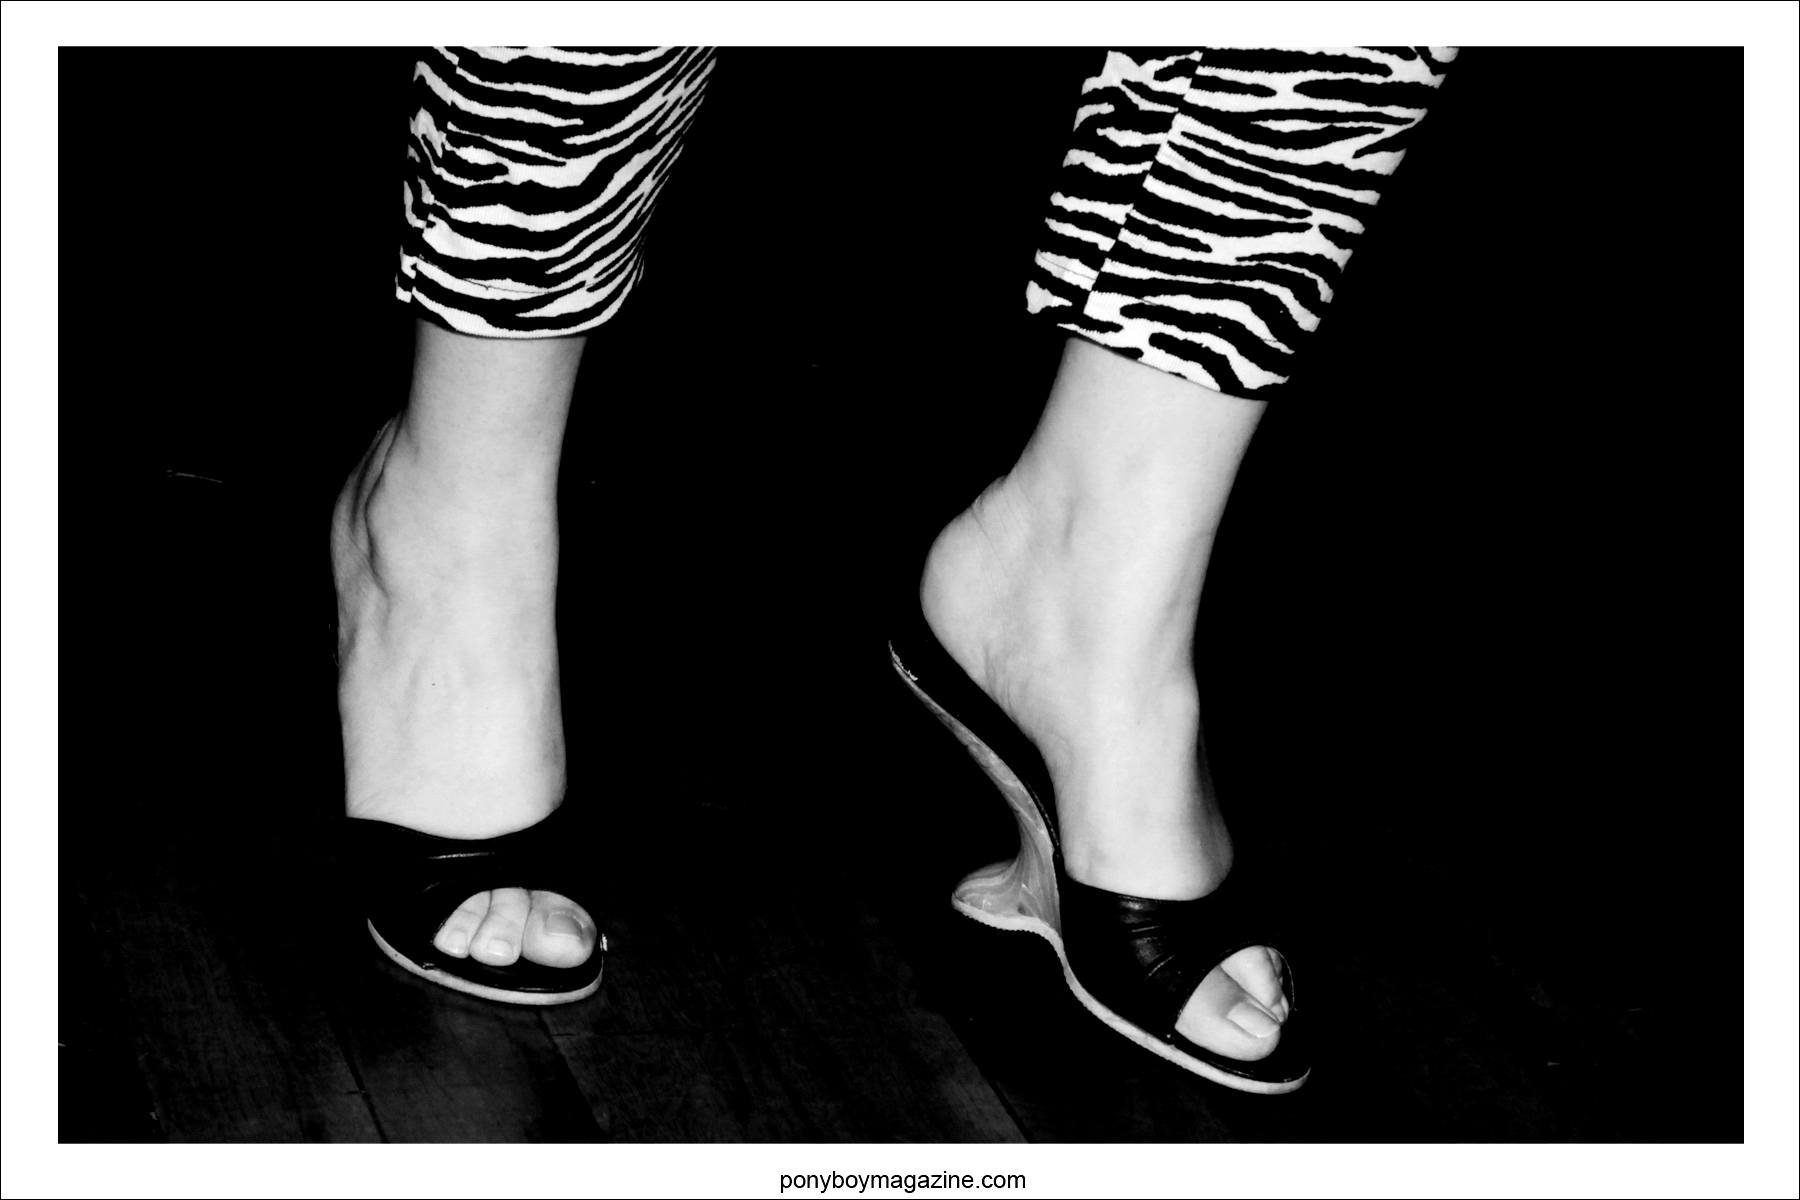 Stylish vintage 1950's boomerang high heels photographed on the dance floor at Tom Ingram's Viva Las Vegas 17 rockabilly weekender.